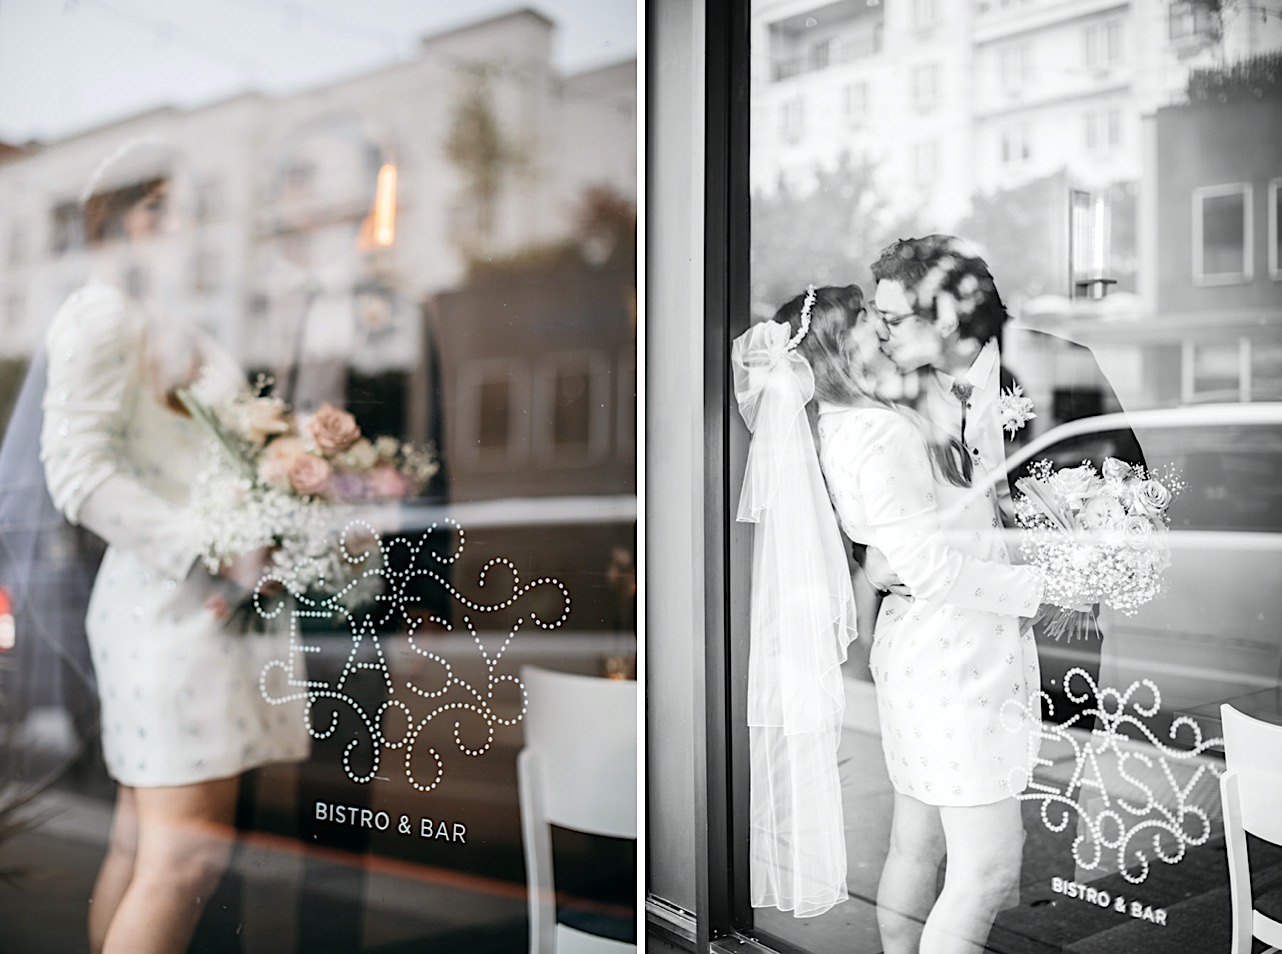 Reflections of downtown Chattanooga in the window of Easy Bistro & Bar as a bride and groom kiss inside.